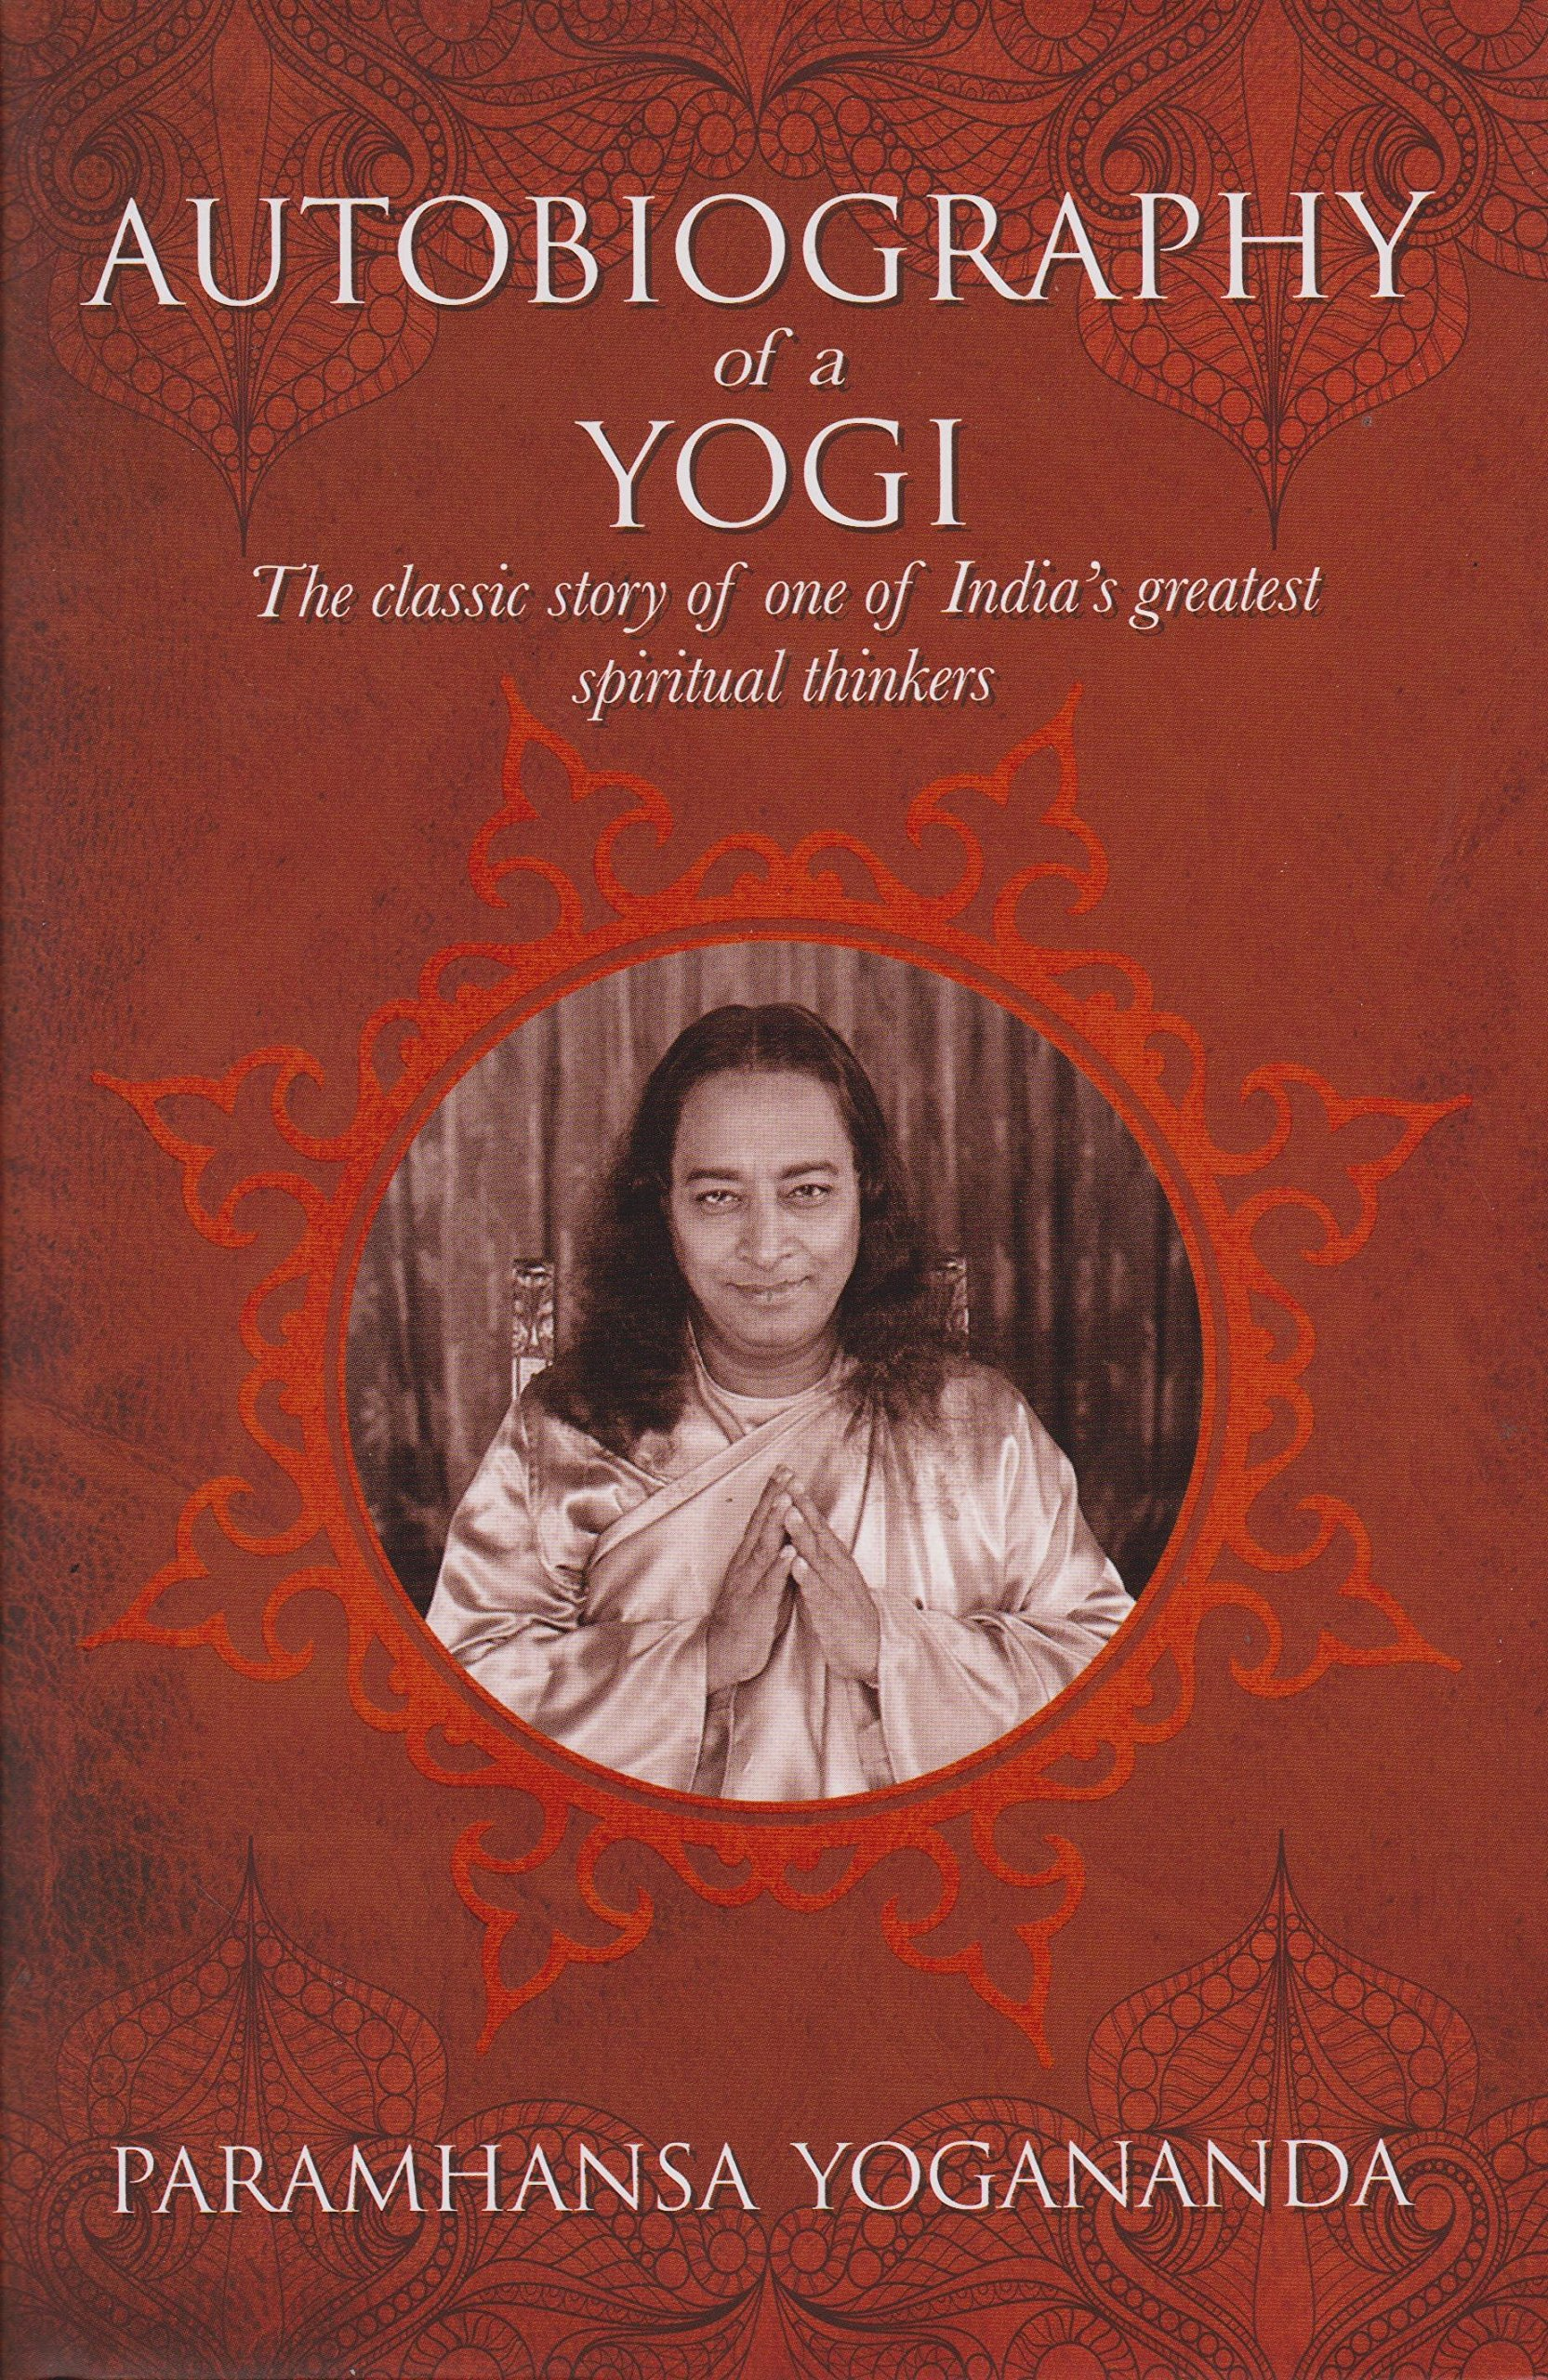 The Autobiography of a Yogi: The Classic Story of One of India's Greatest  Spiritual Thinkers: Paramahansa Yogananda: 9781785995026: Amazon.com: Books